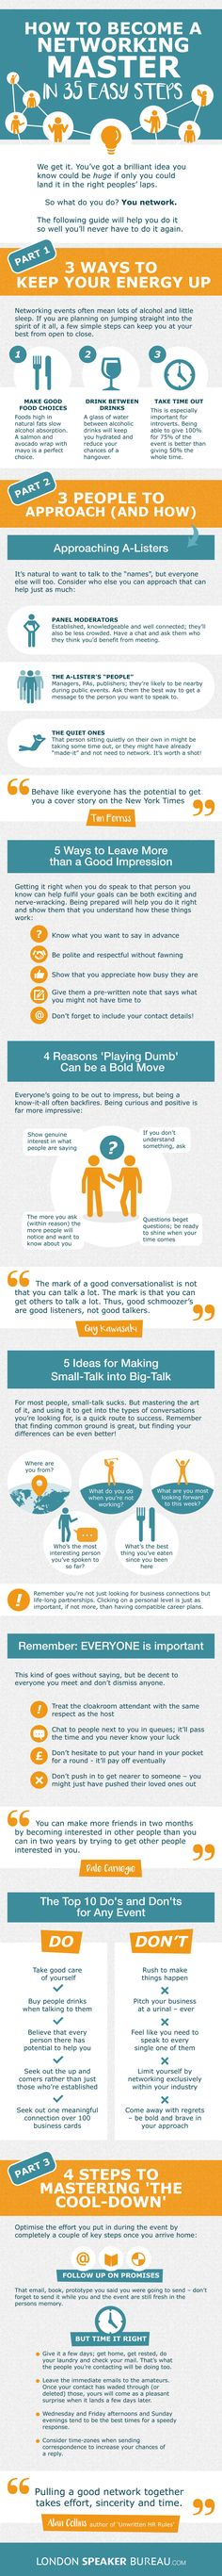 How to Become A Networking Master in 35 Easy Steps #Infographic #HowTo #IT